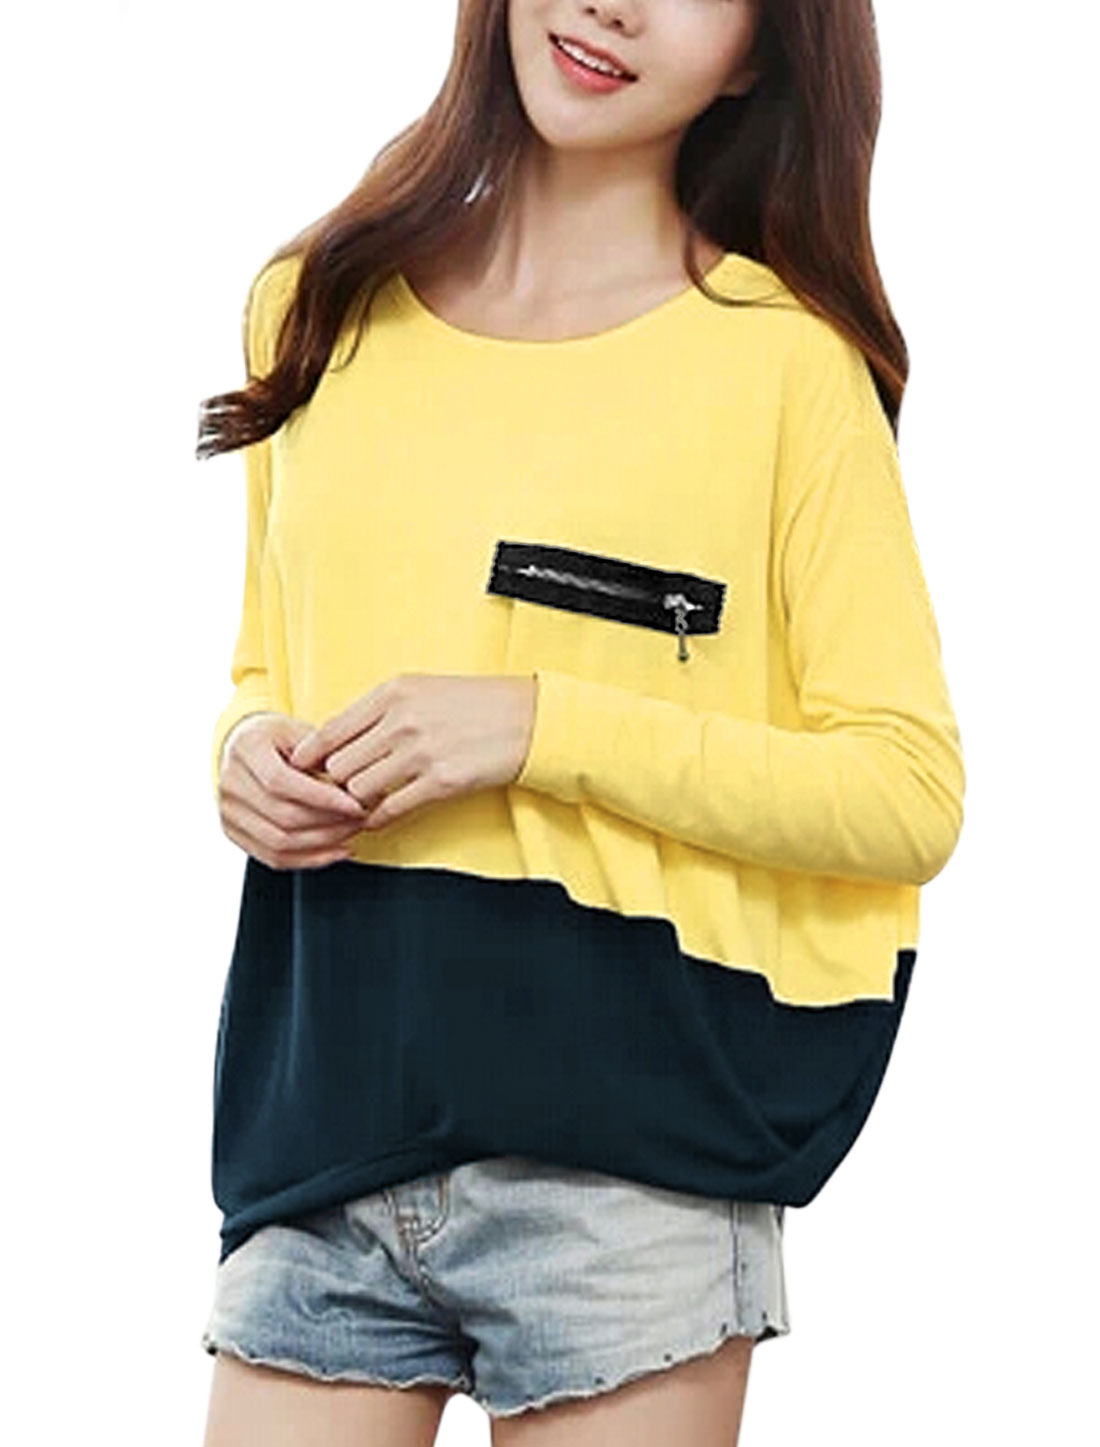 Lady Round Neck Color Block Tee Shirt Light Yellow Navy Blue L